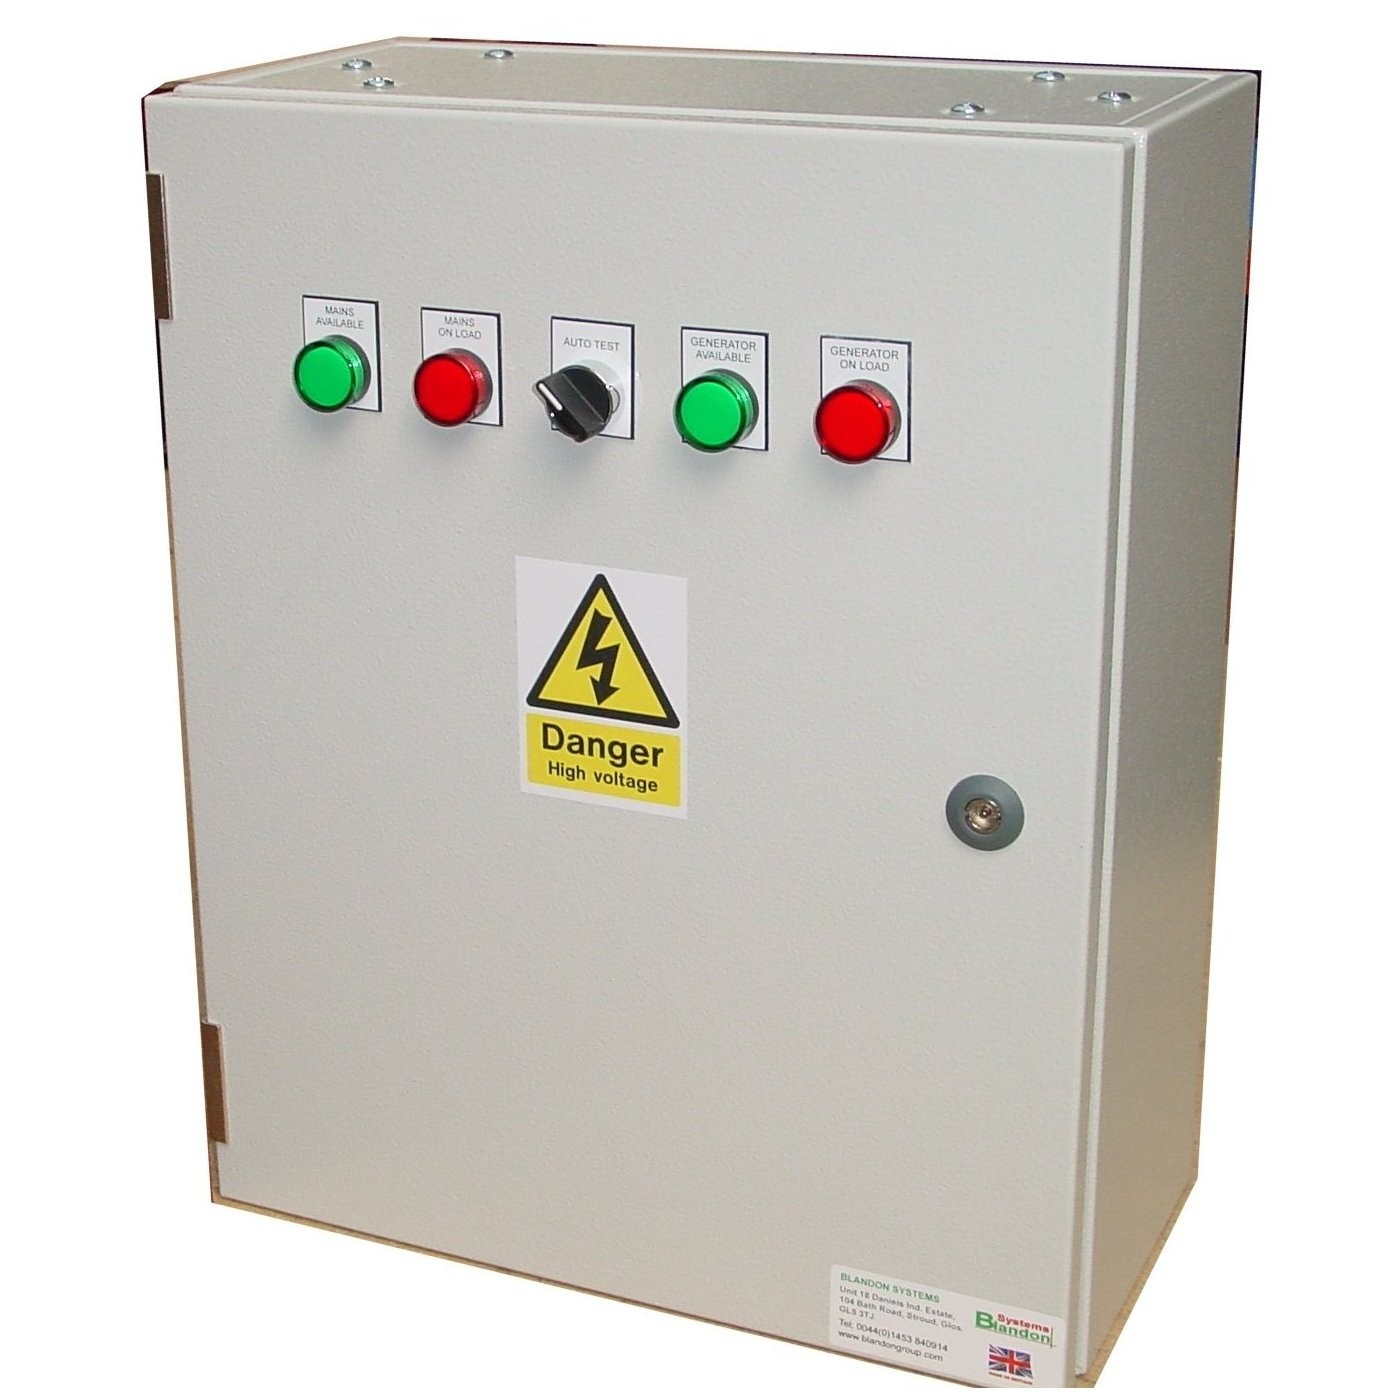 40A ATS Single Phase 230V, UVR Controlled, ICG Contactors